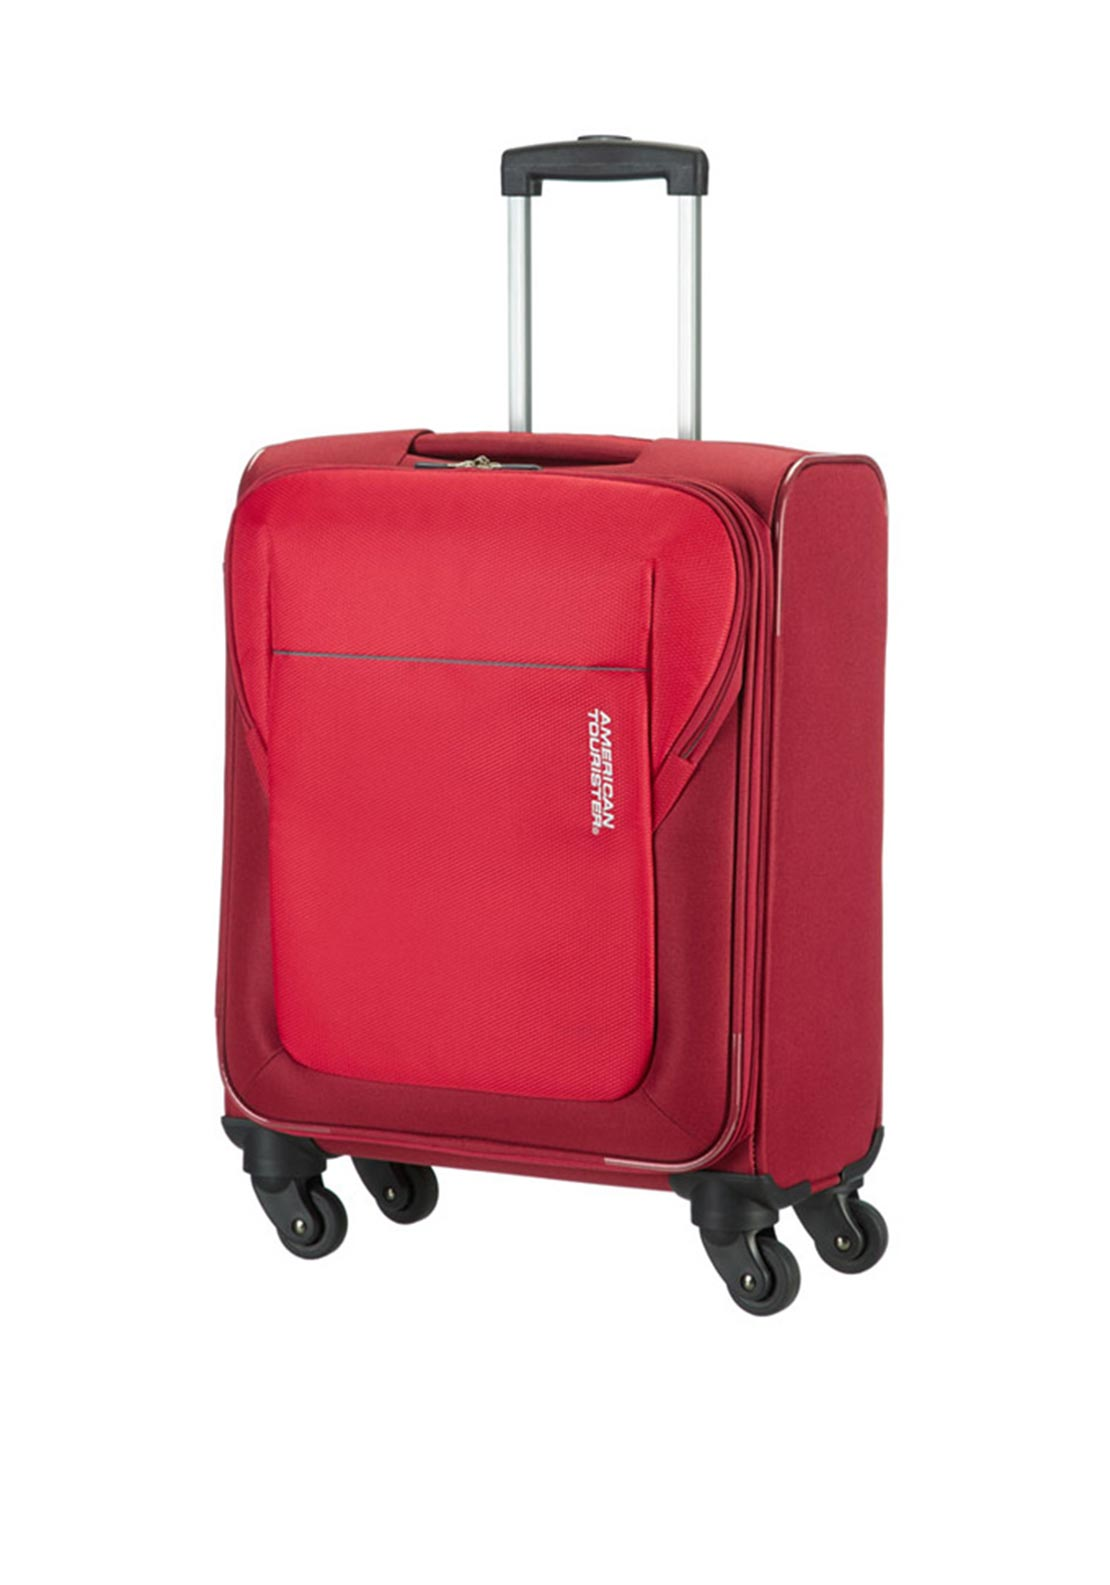 American Tourister San Francisco Spinner Cabin Size Suitcase 55cm, Red